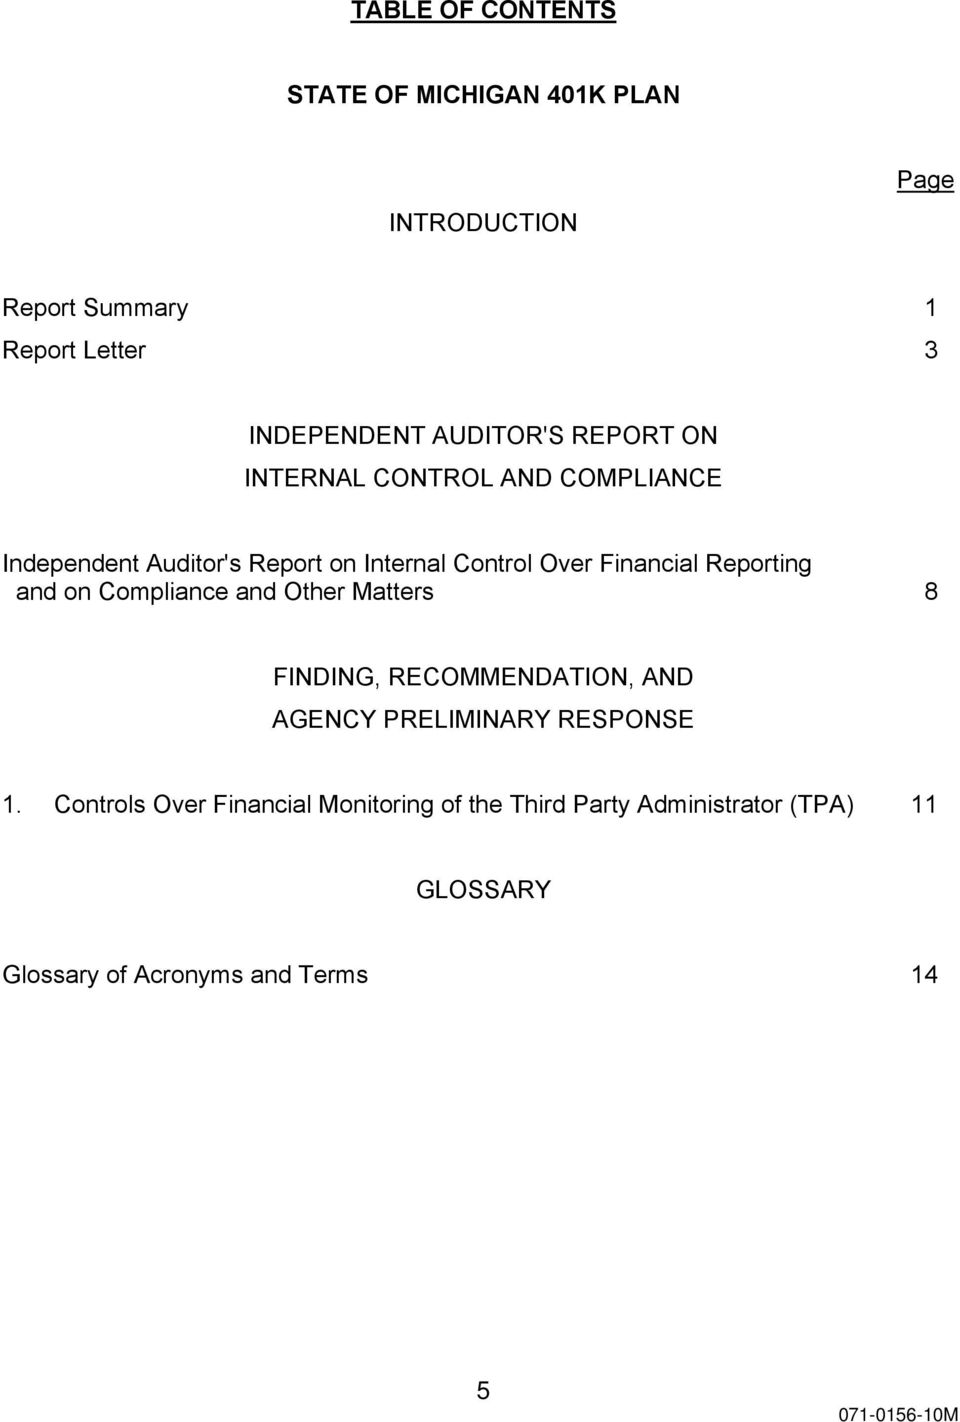 Financial Reporting and on Compliance and Other Matters 8 FINDING, RECOMMENDATION, AND AGENCY PRELIMINARY